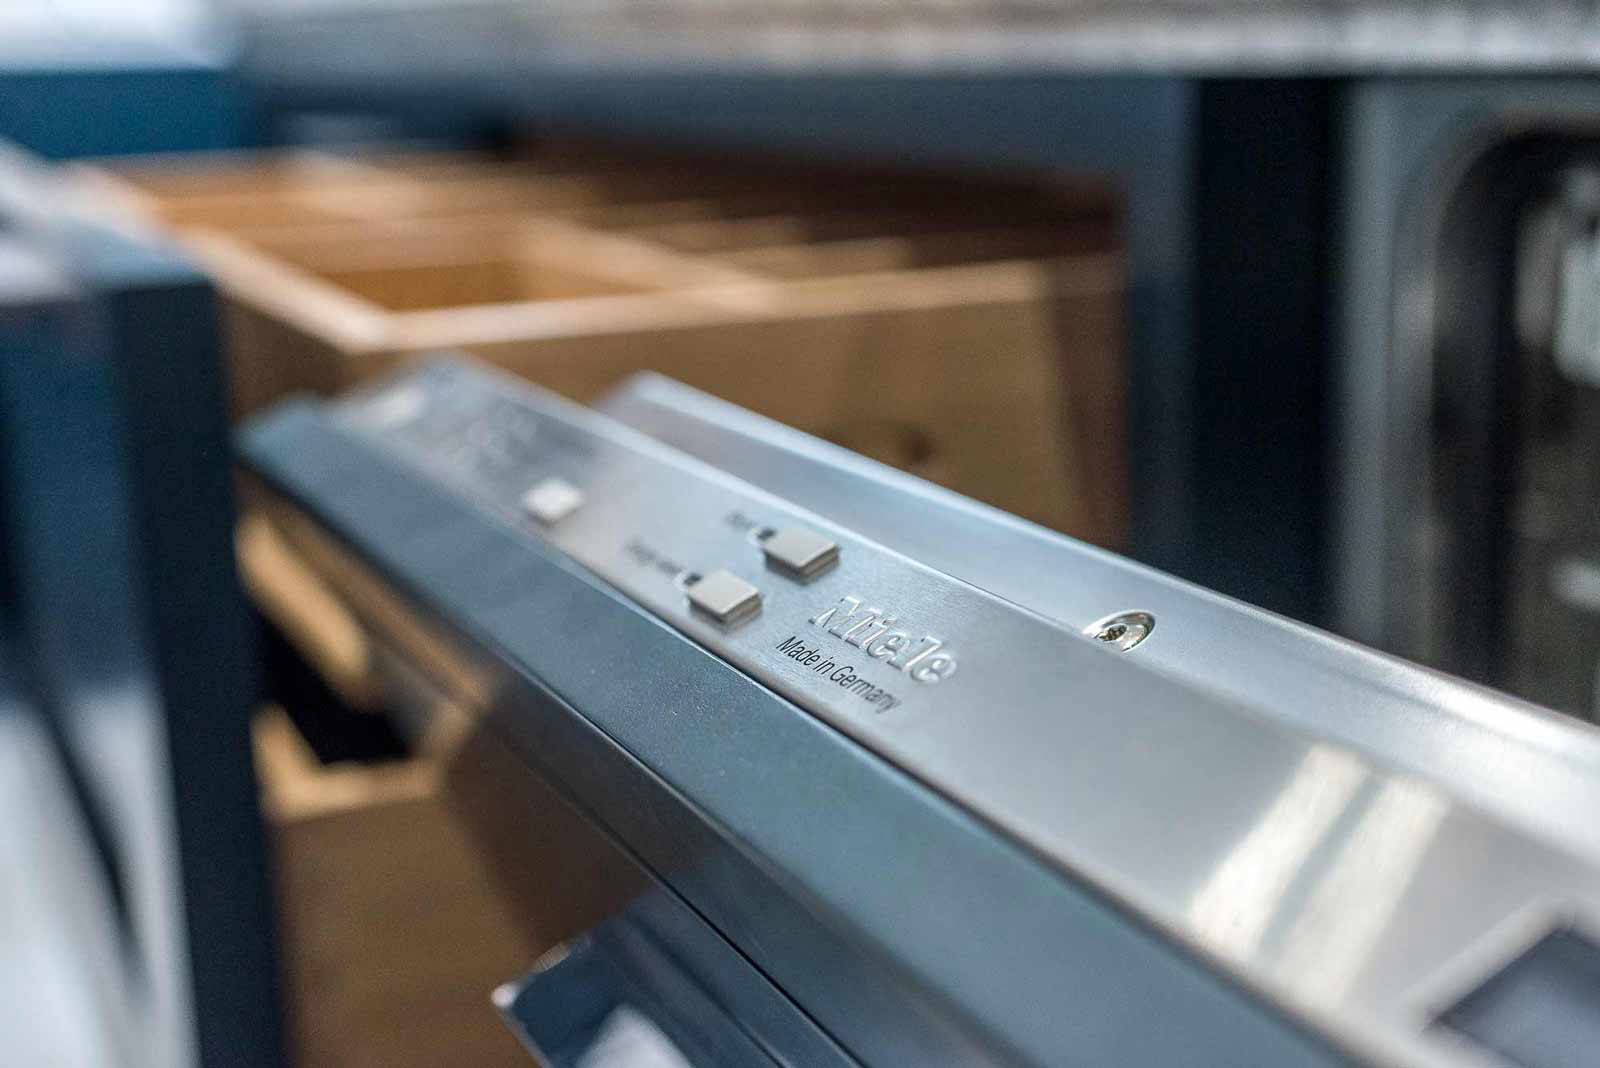 KBD Kitchen by Design, Miele dishwasher detail